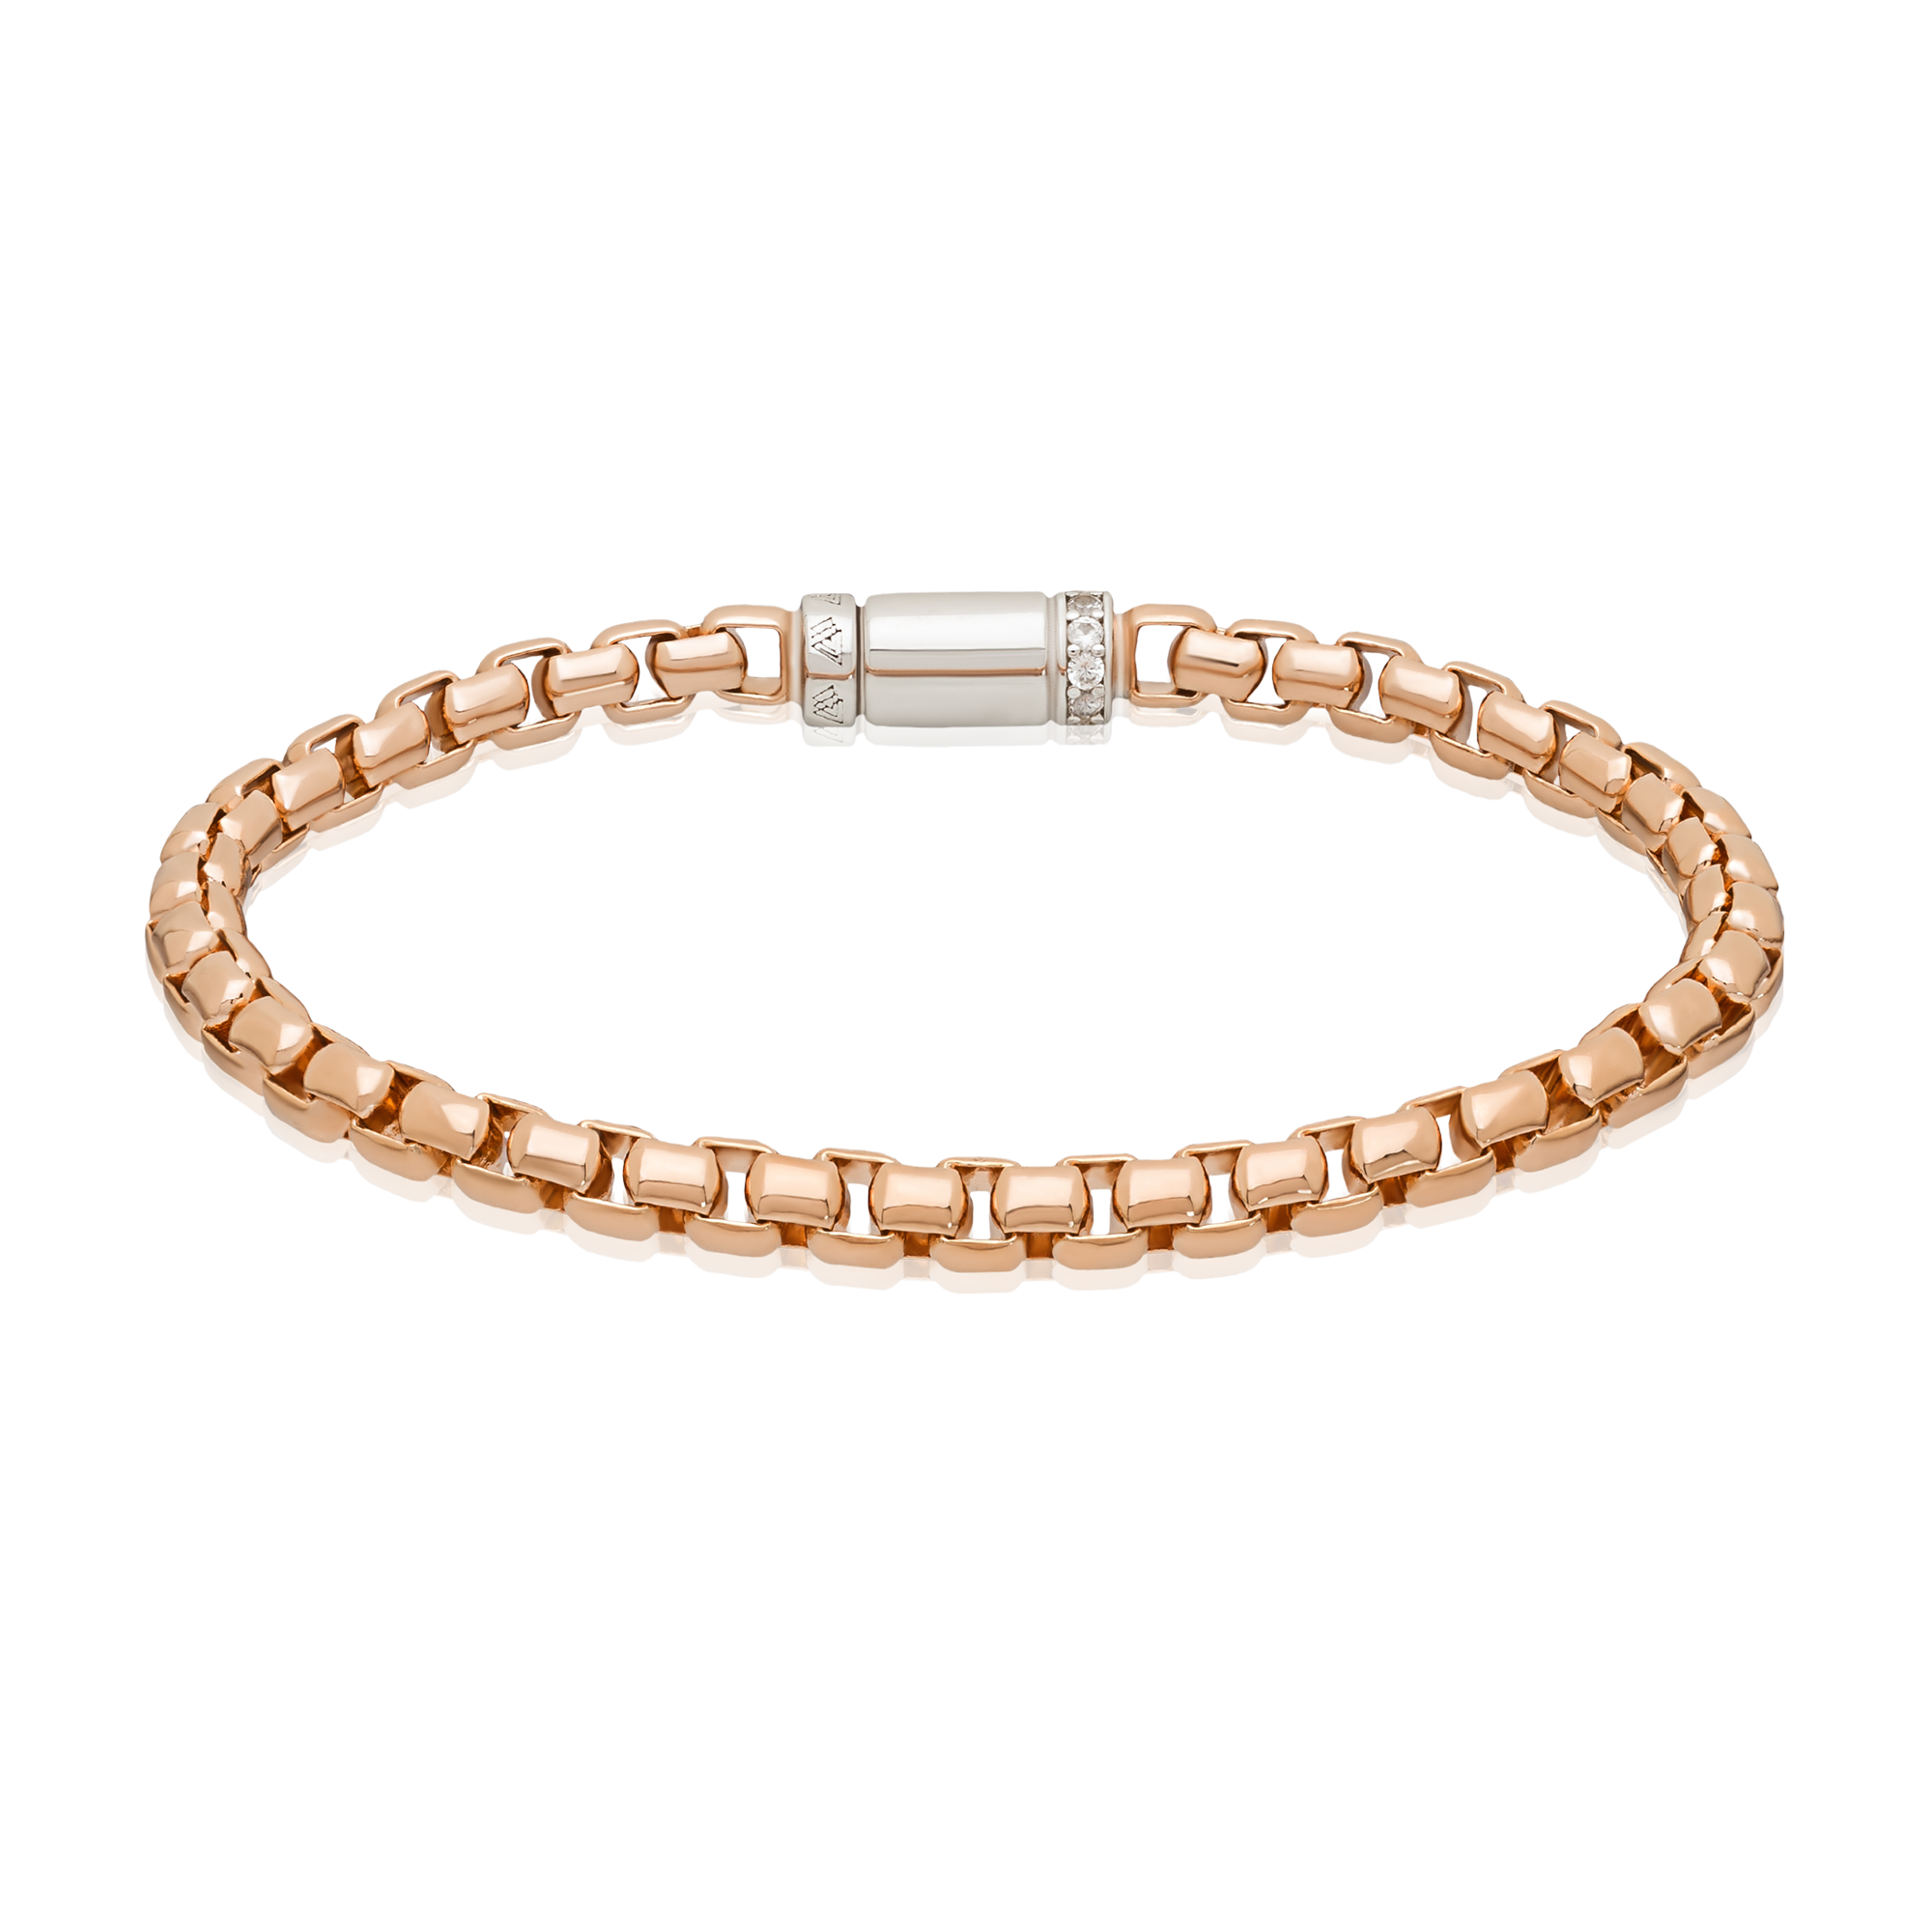 Rose golden bracelet product image